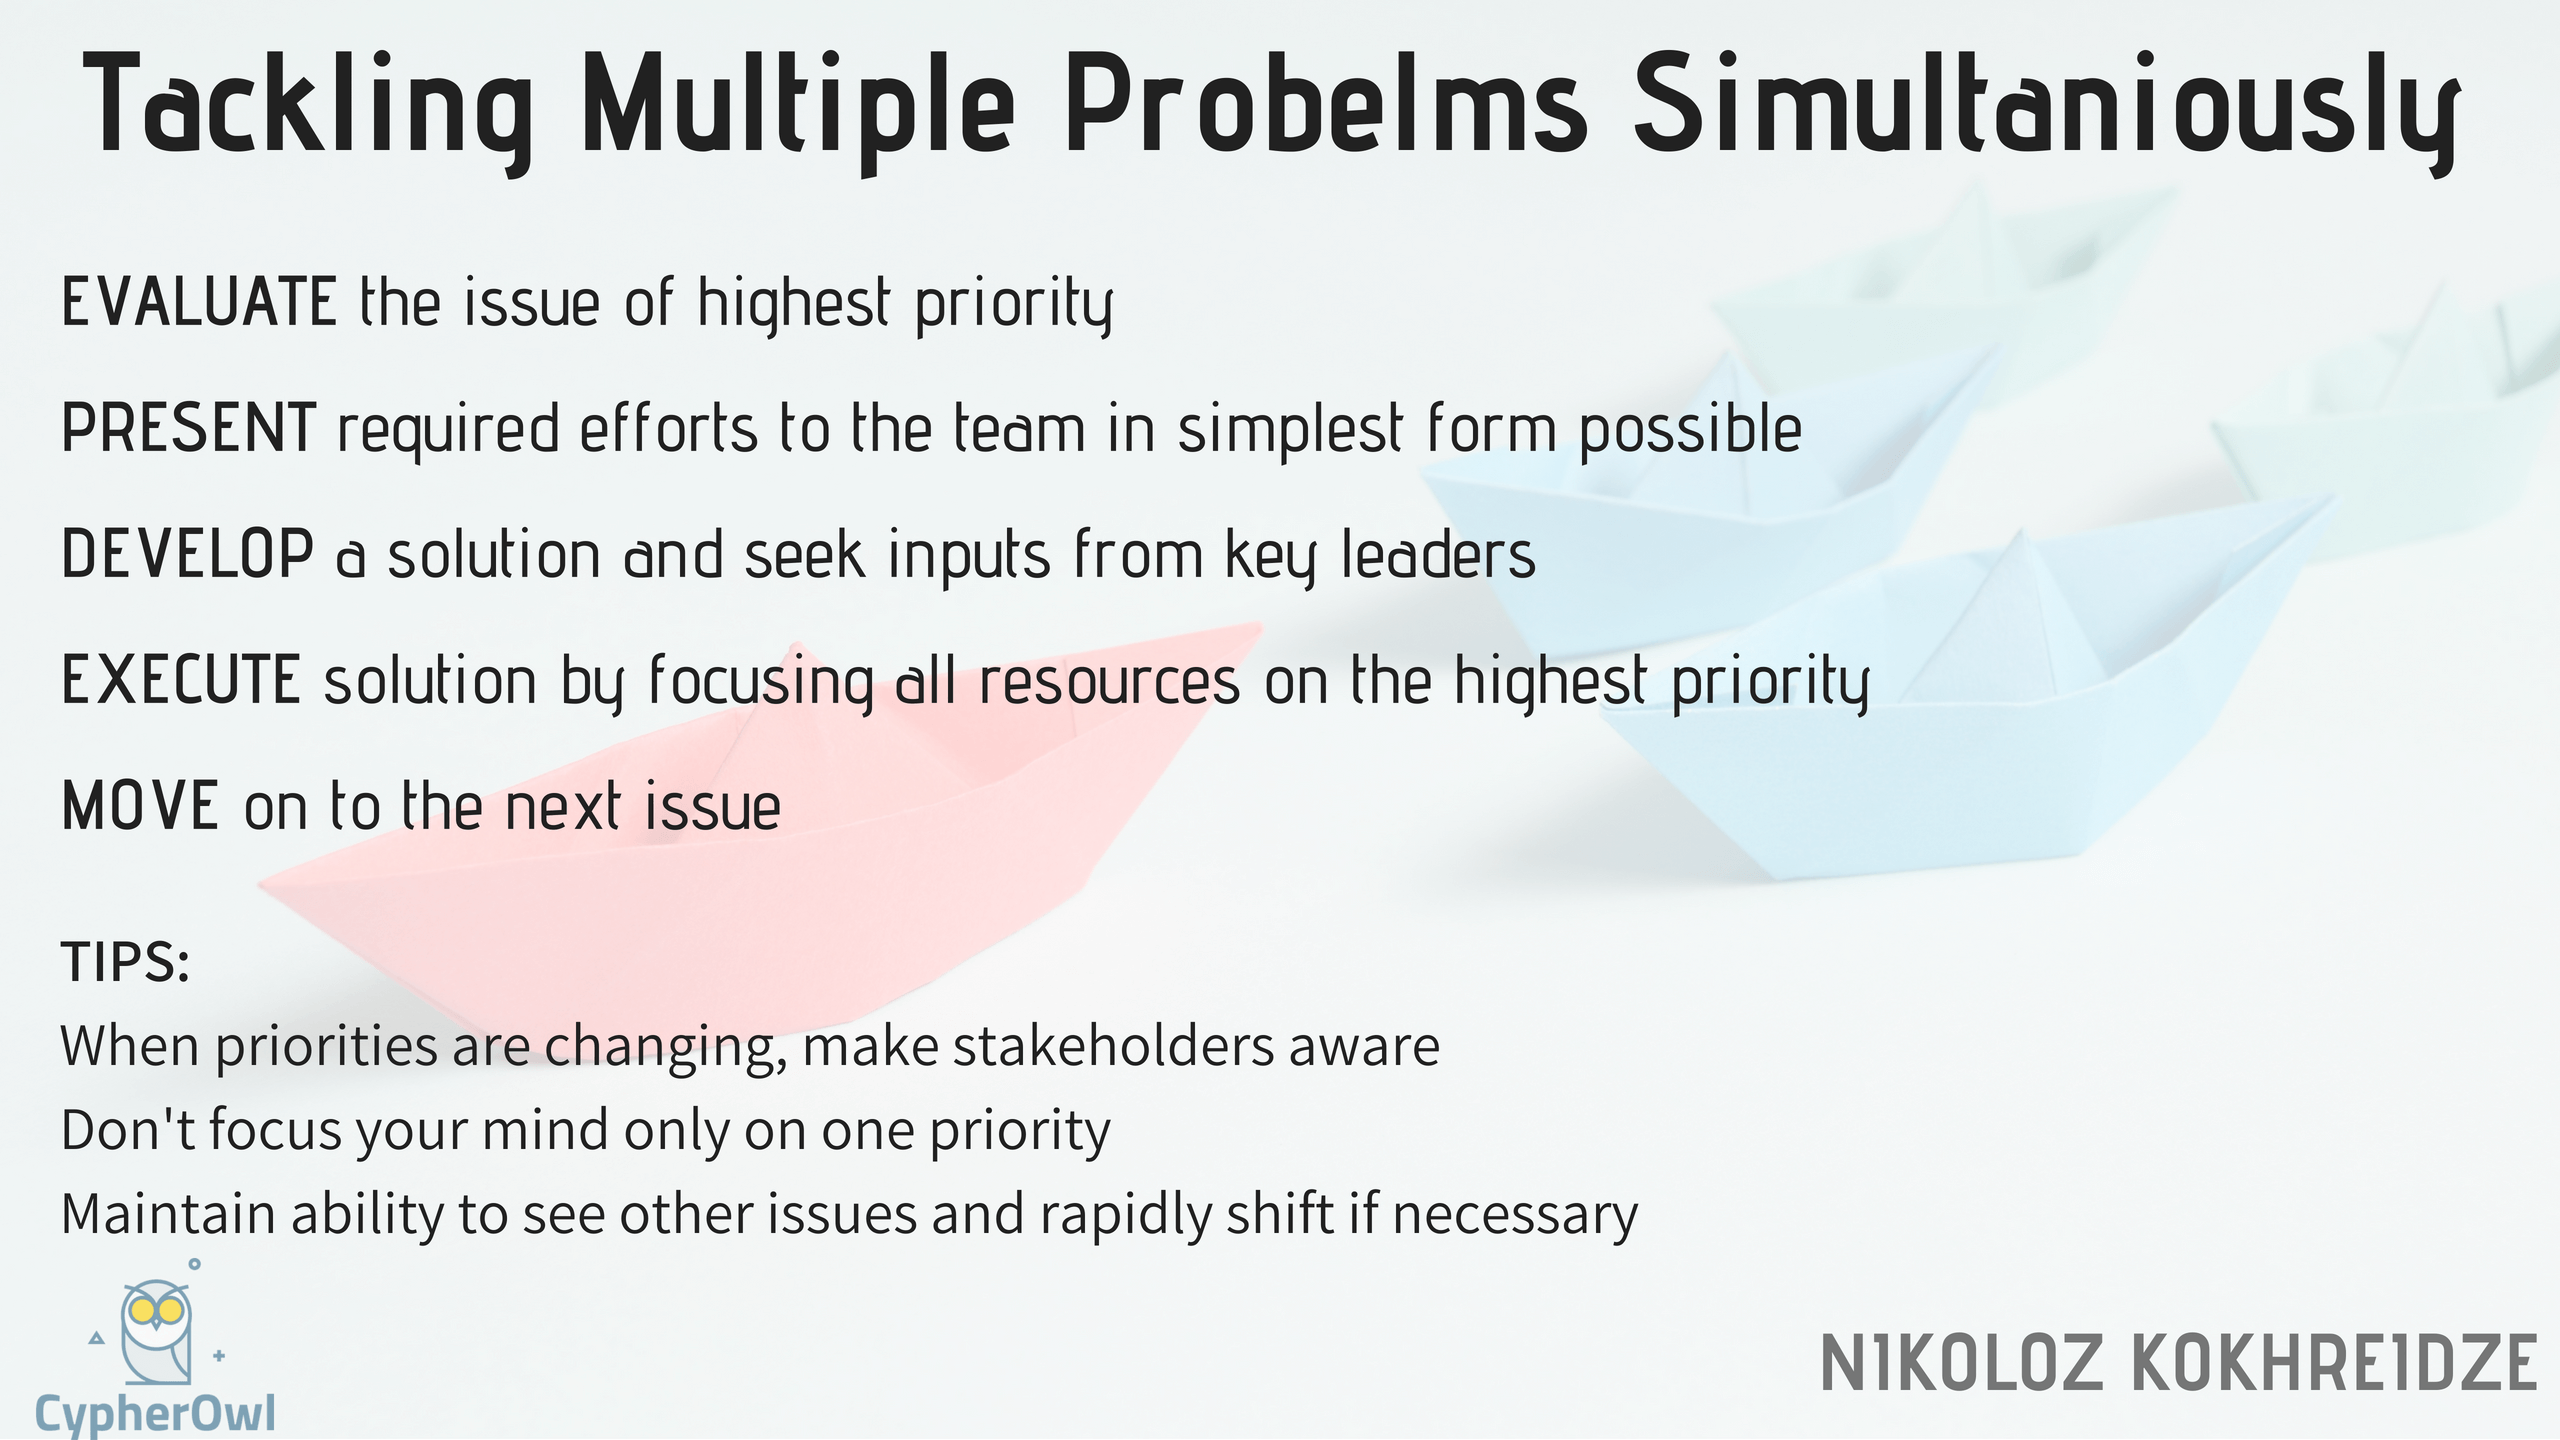 Tackling-Multiple-Problems-Simultaniously